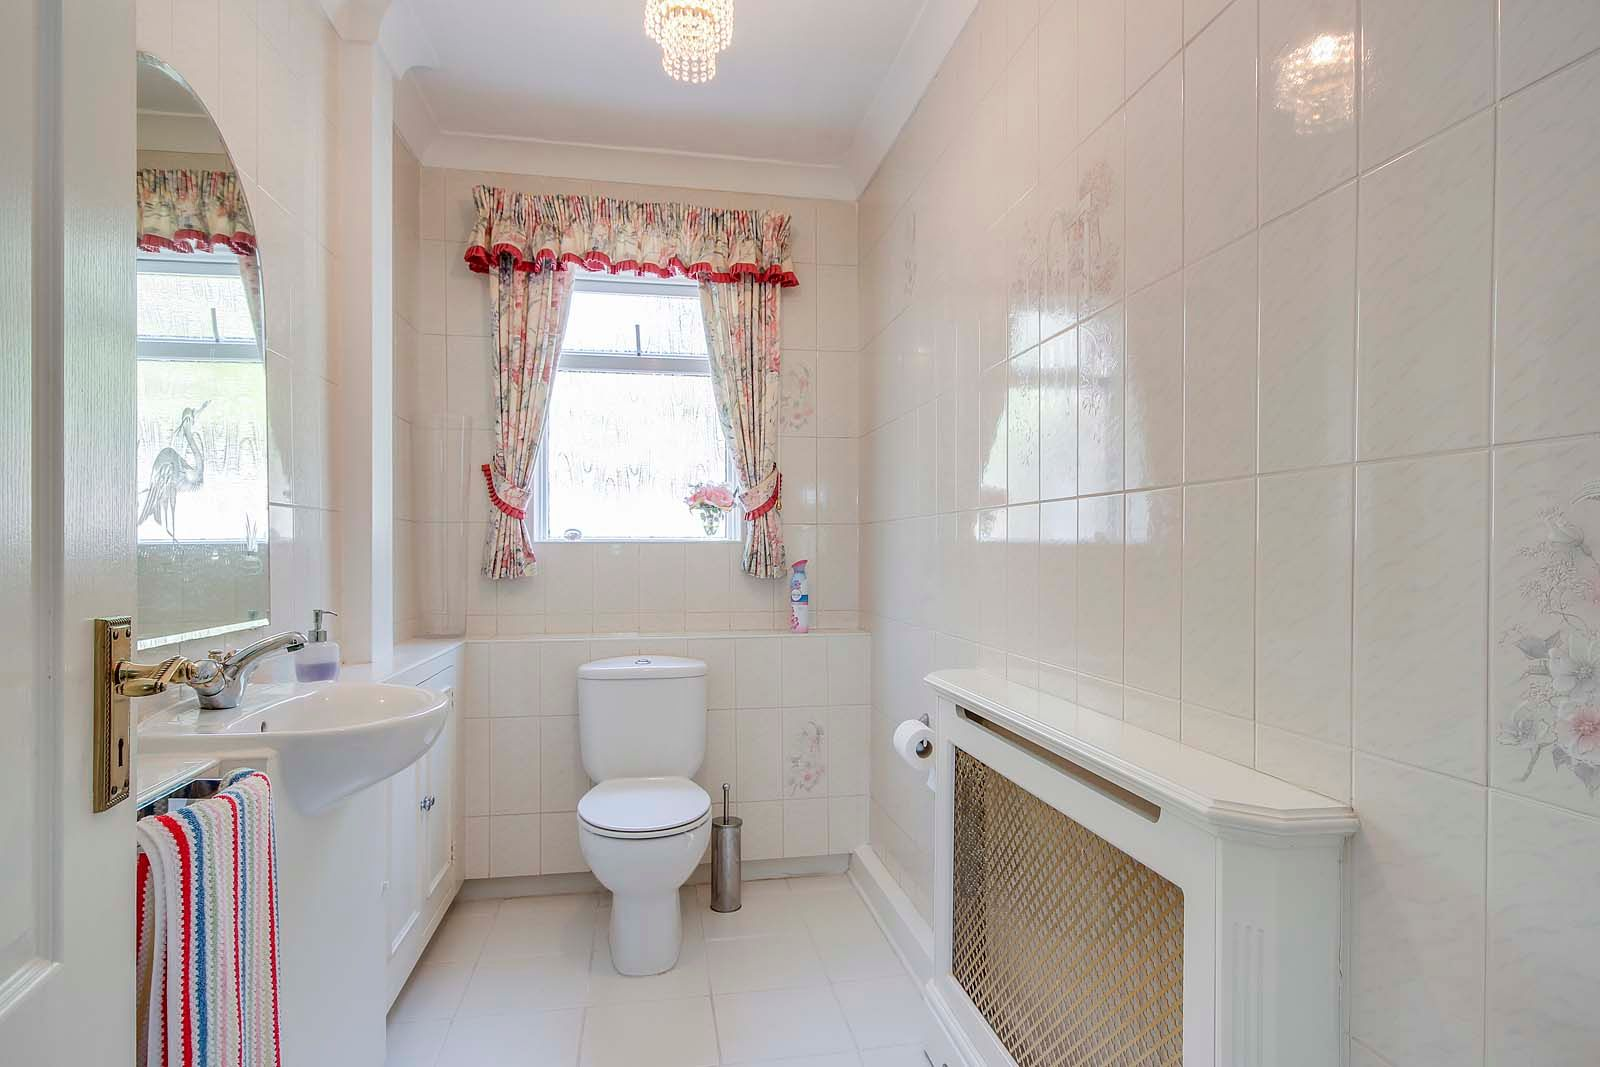 5 bed House for sale in The Willowhayne, East Preston - Cloakroom (Property Image 13)